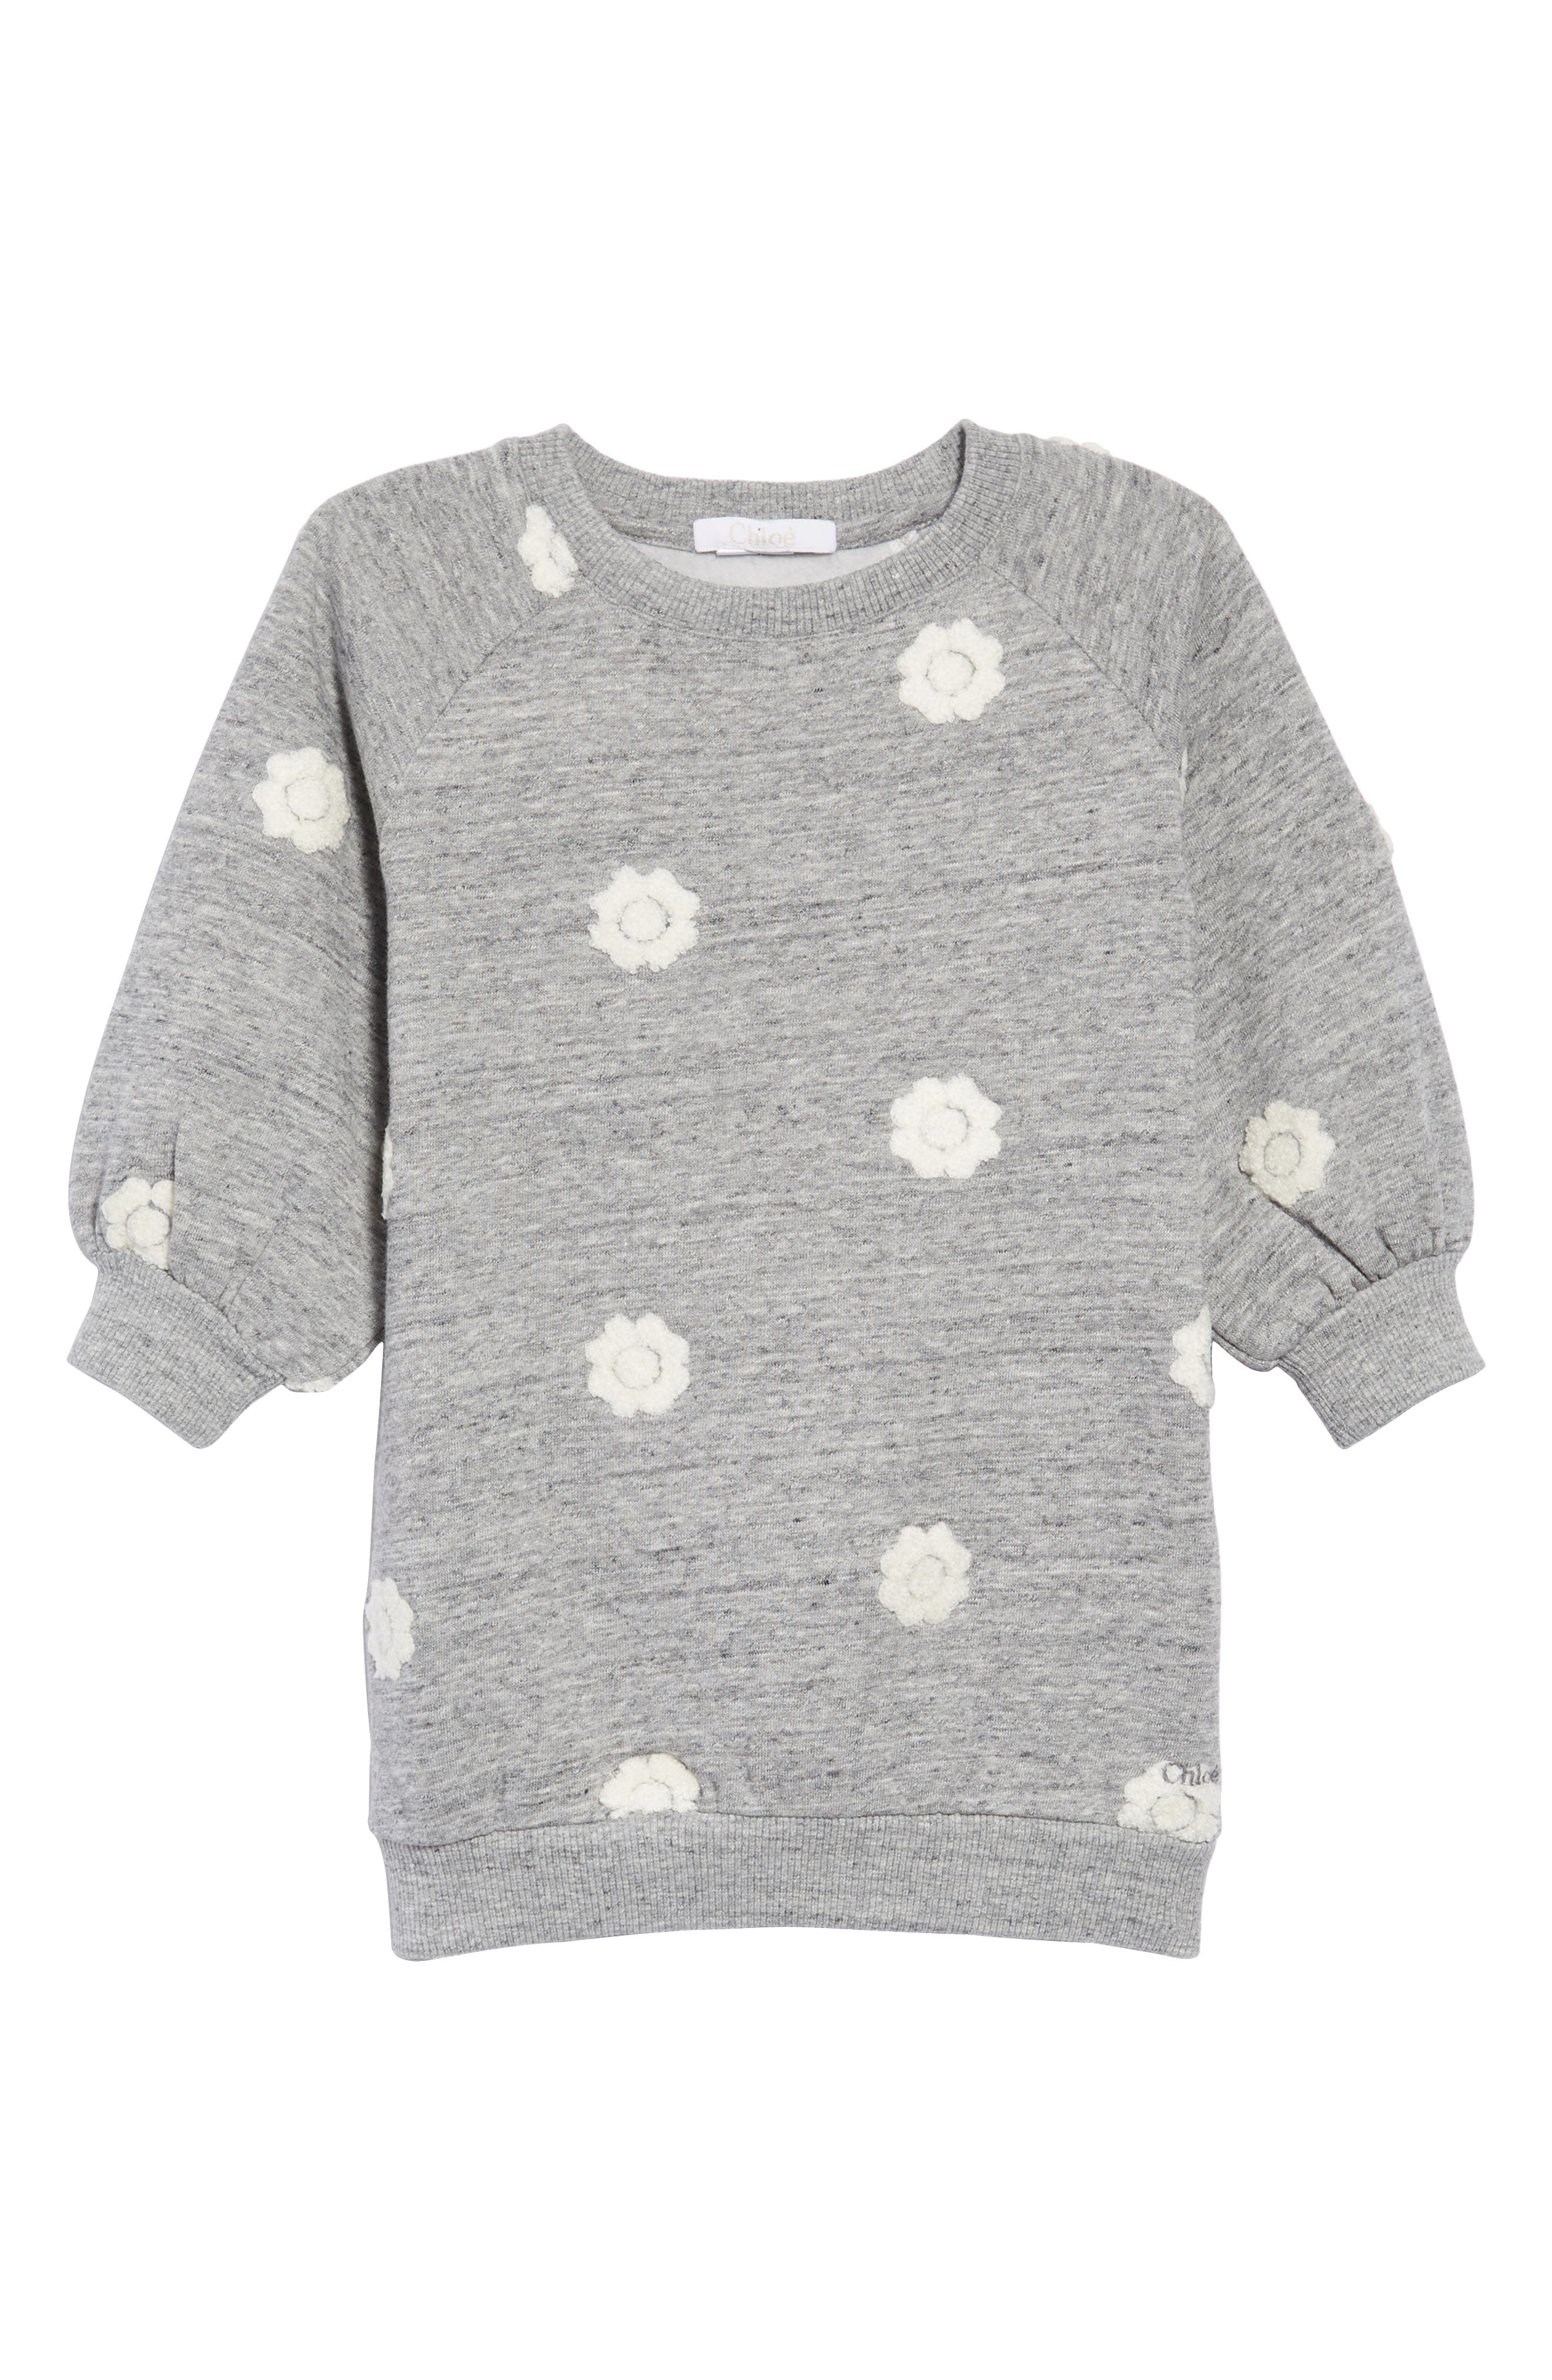 Floral Embroidered Sweatshirt Dress,                         Main,                         color, GRIS CHINE